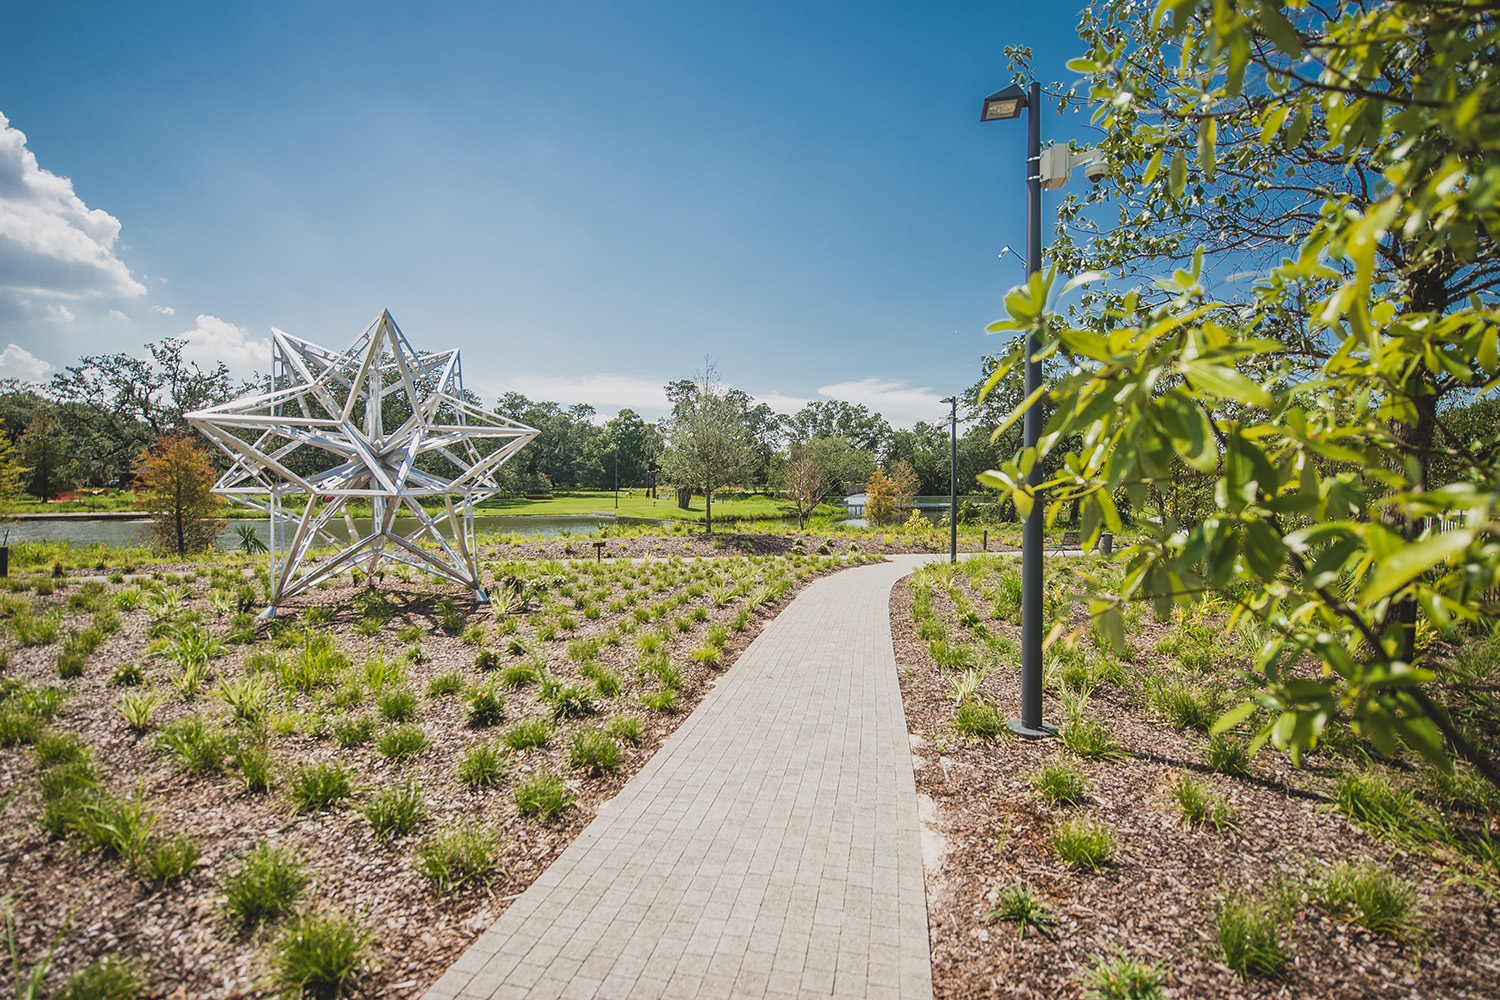 SYDNEY AND WALDA BESTHOFF SCULPTURE GARDEN EXPANSION